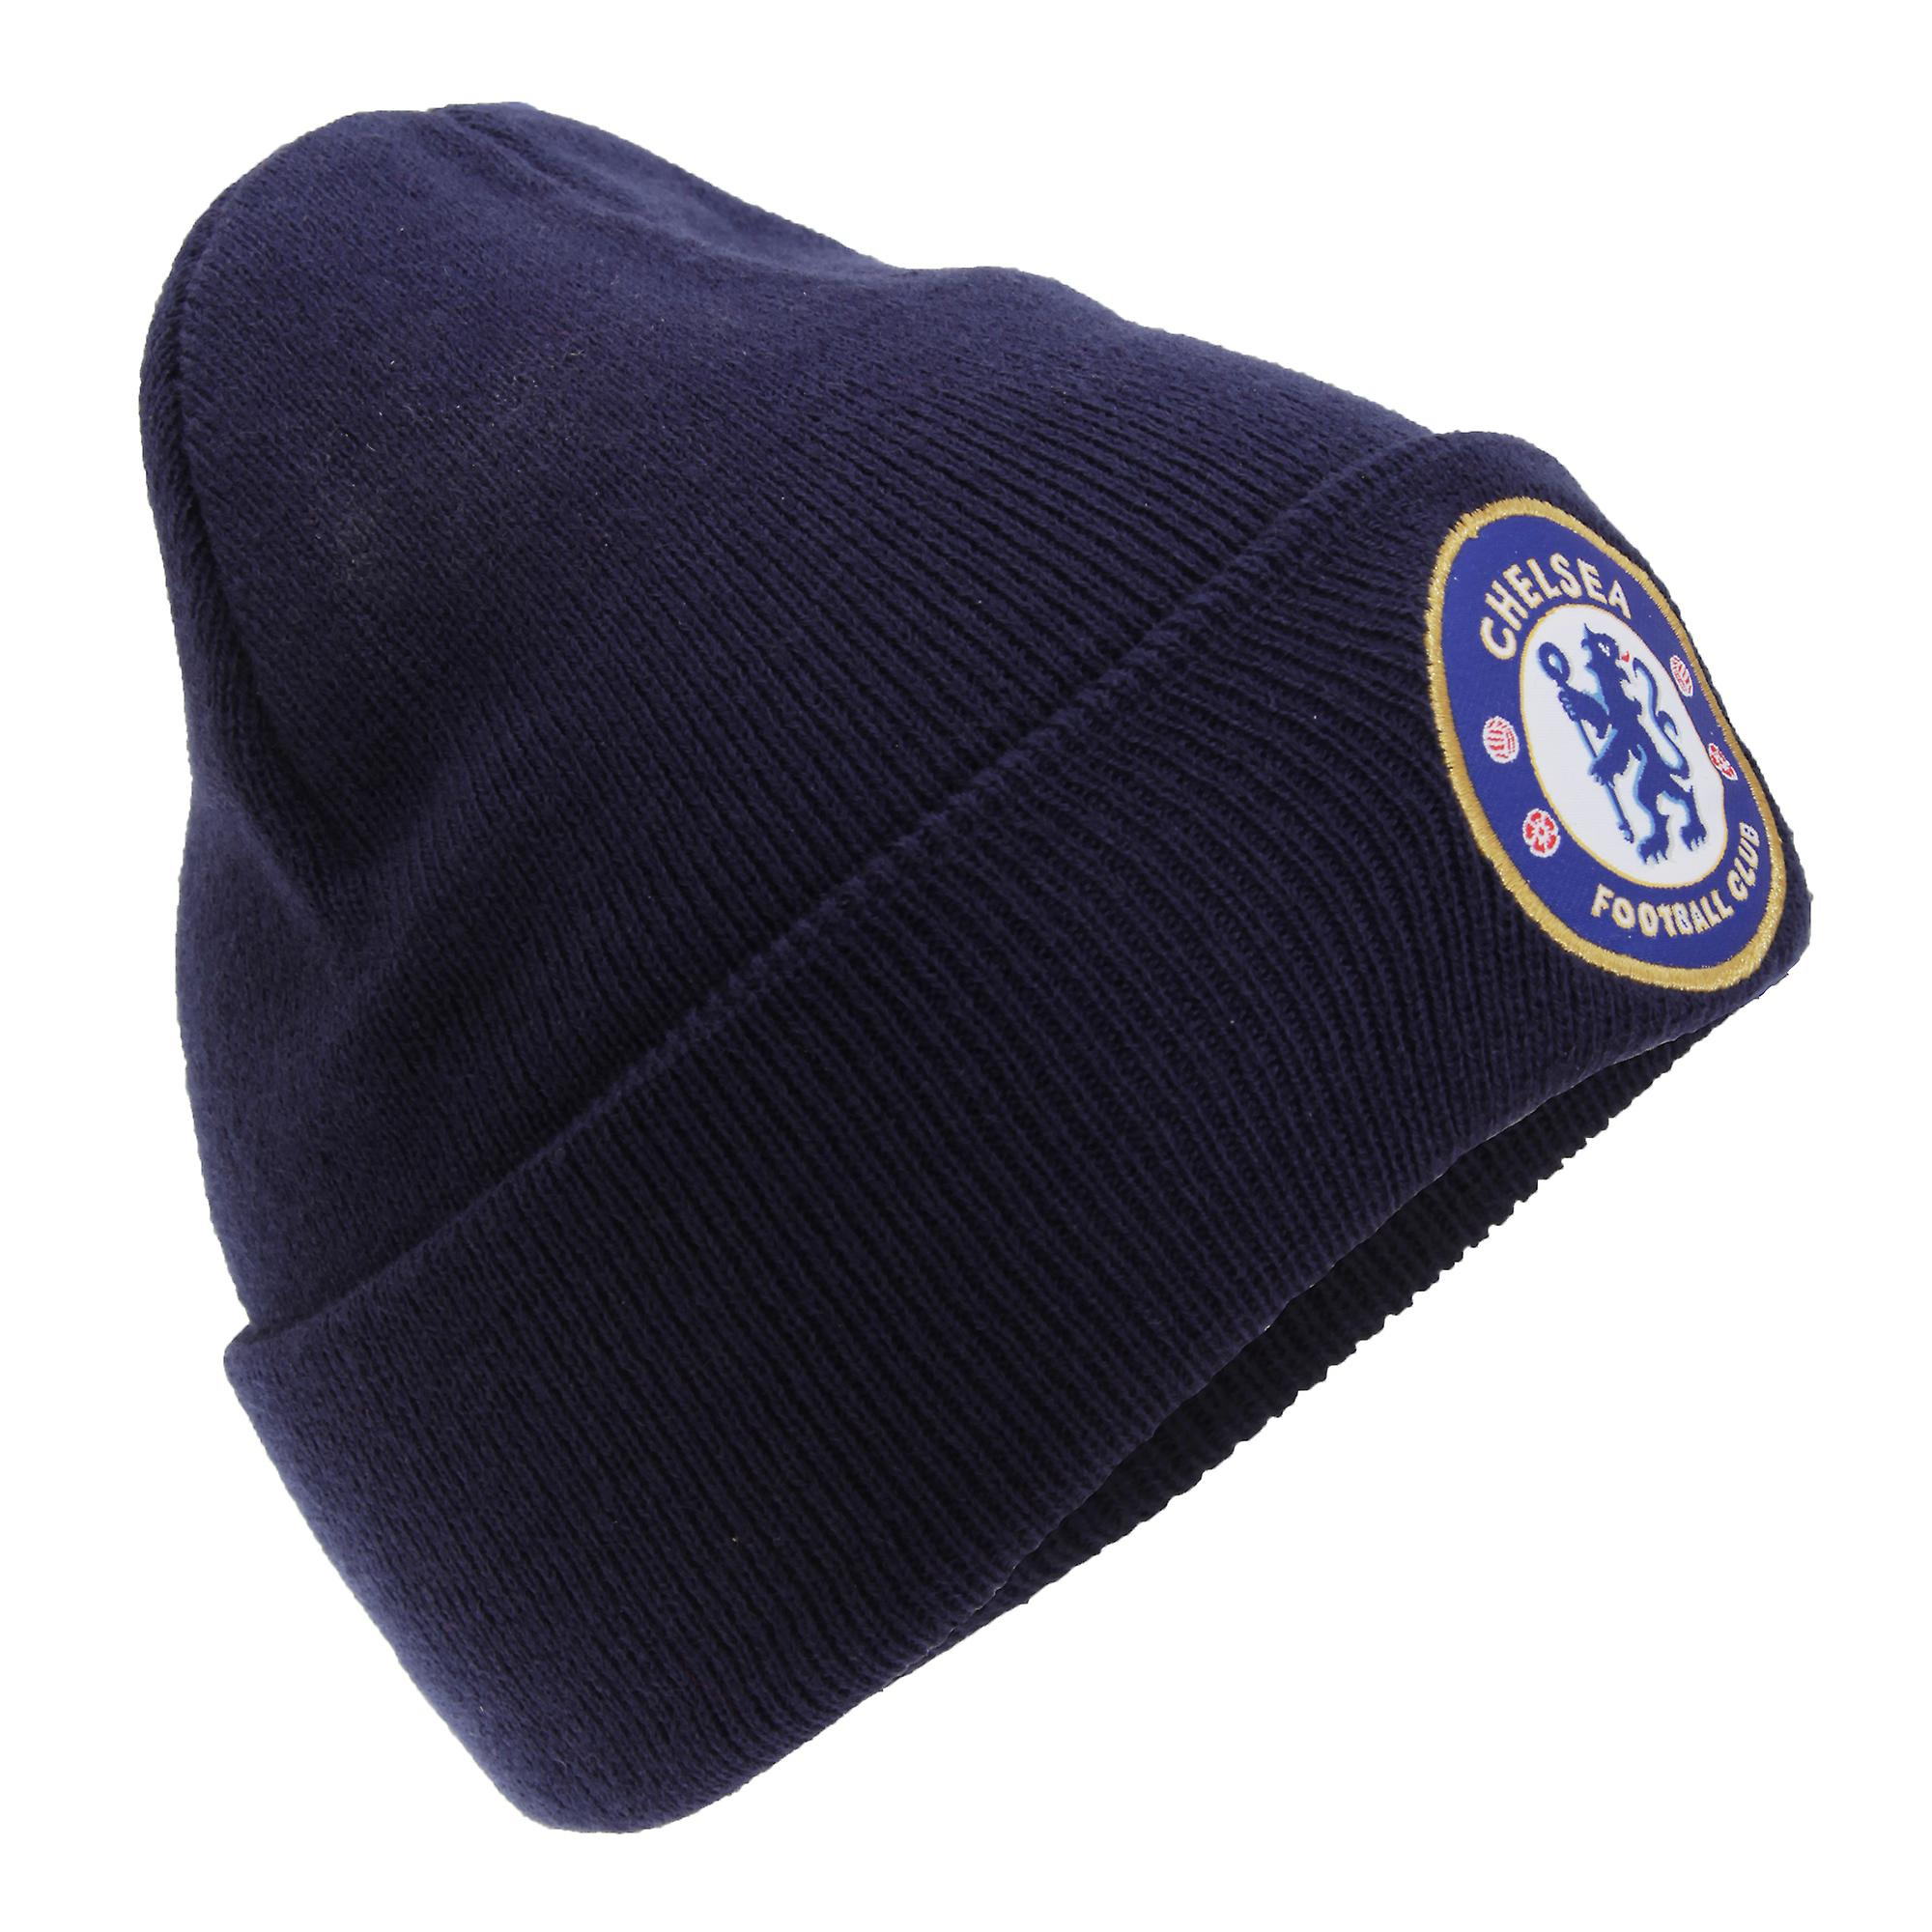 e0aed6a32f2 Chelsea FC Unisex Official Knitted Winter Football Crest Hat